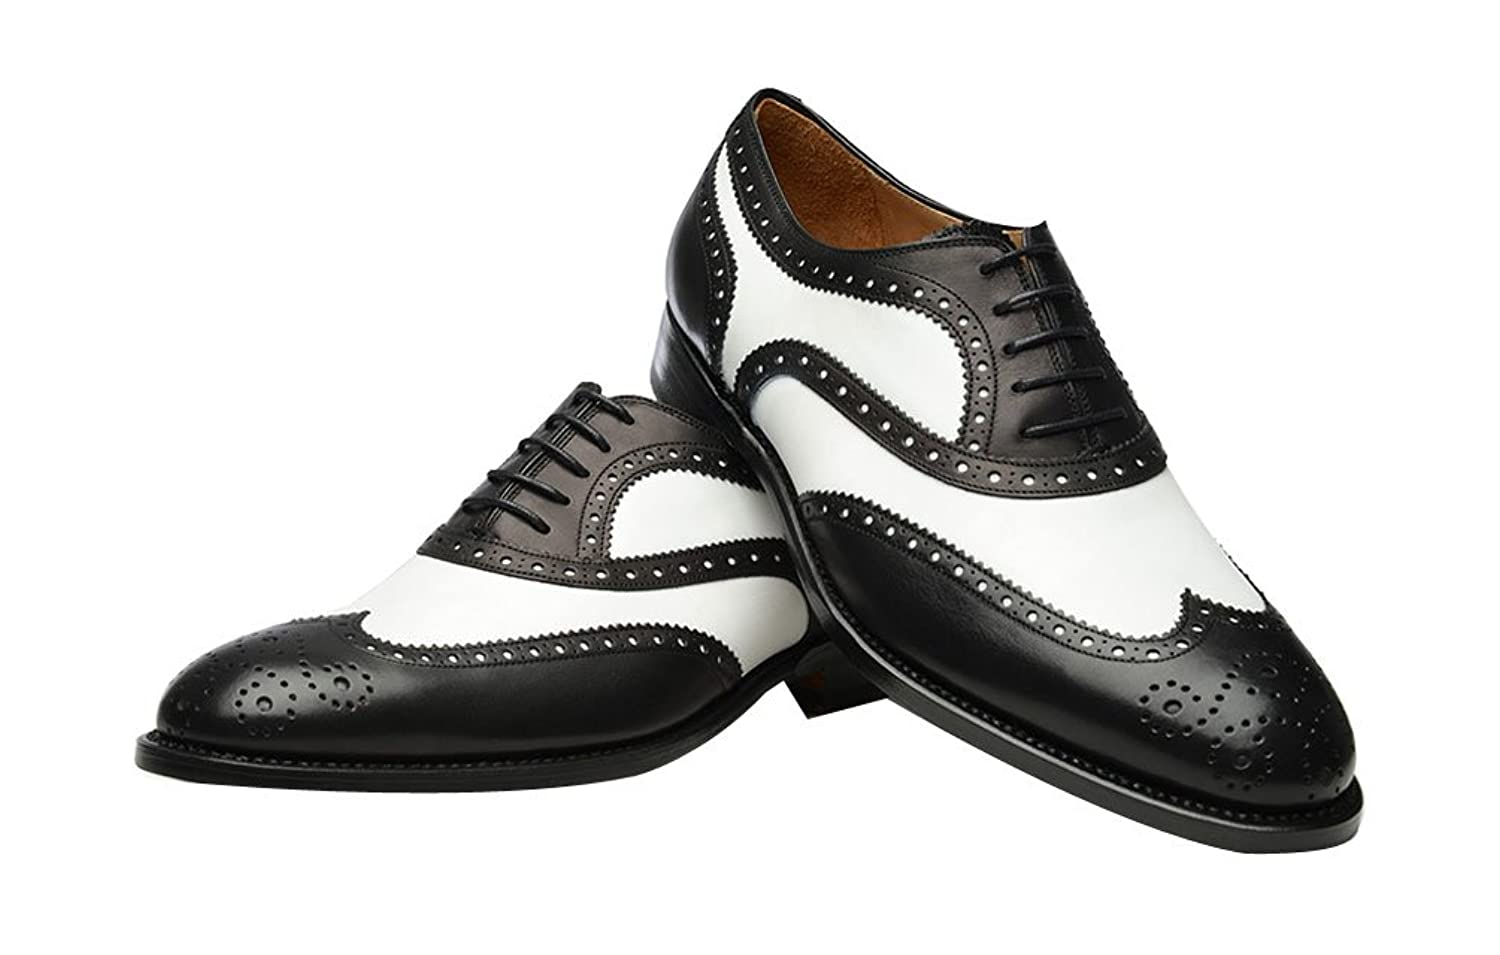 Downton Abbey Men's Fashion Guide ROYAL WIND Geninue Leather Spectator Shoes Mens Black White Lace up Wing Tip Perforated Dress Shoes $79.99 AT vintagedancer.com